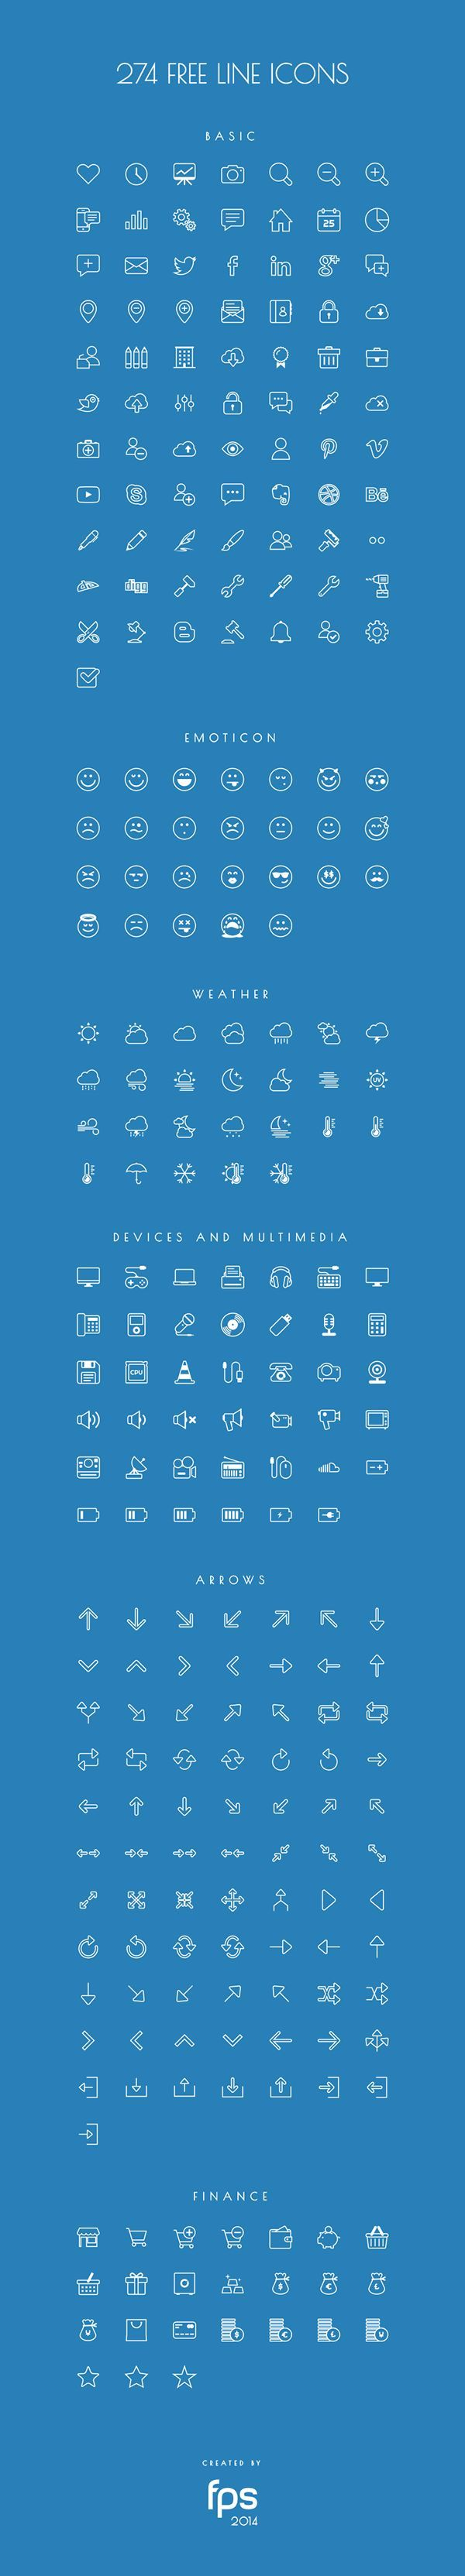 274 Vector Line Icons for free on Behance: